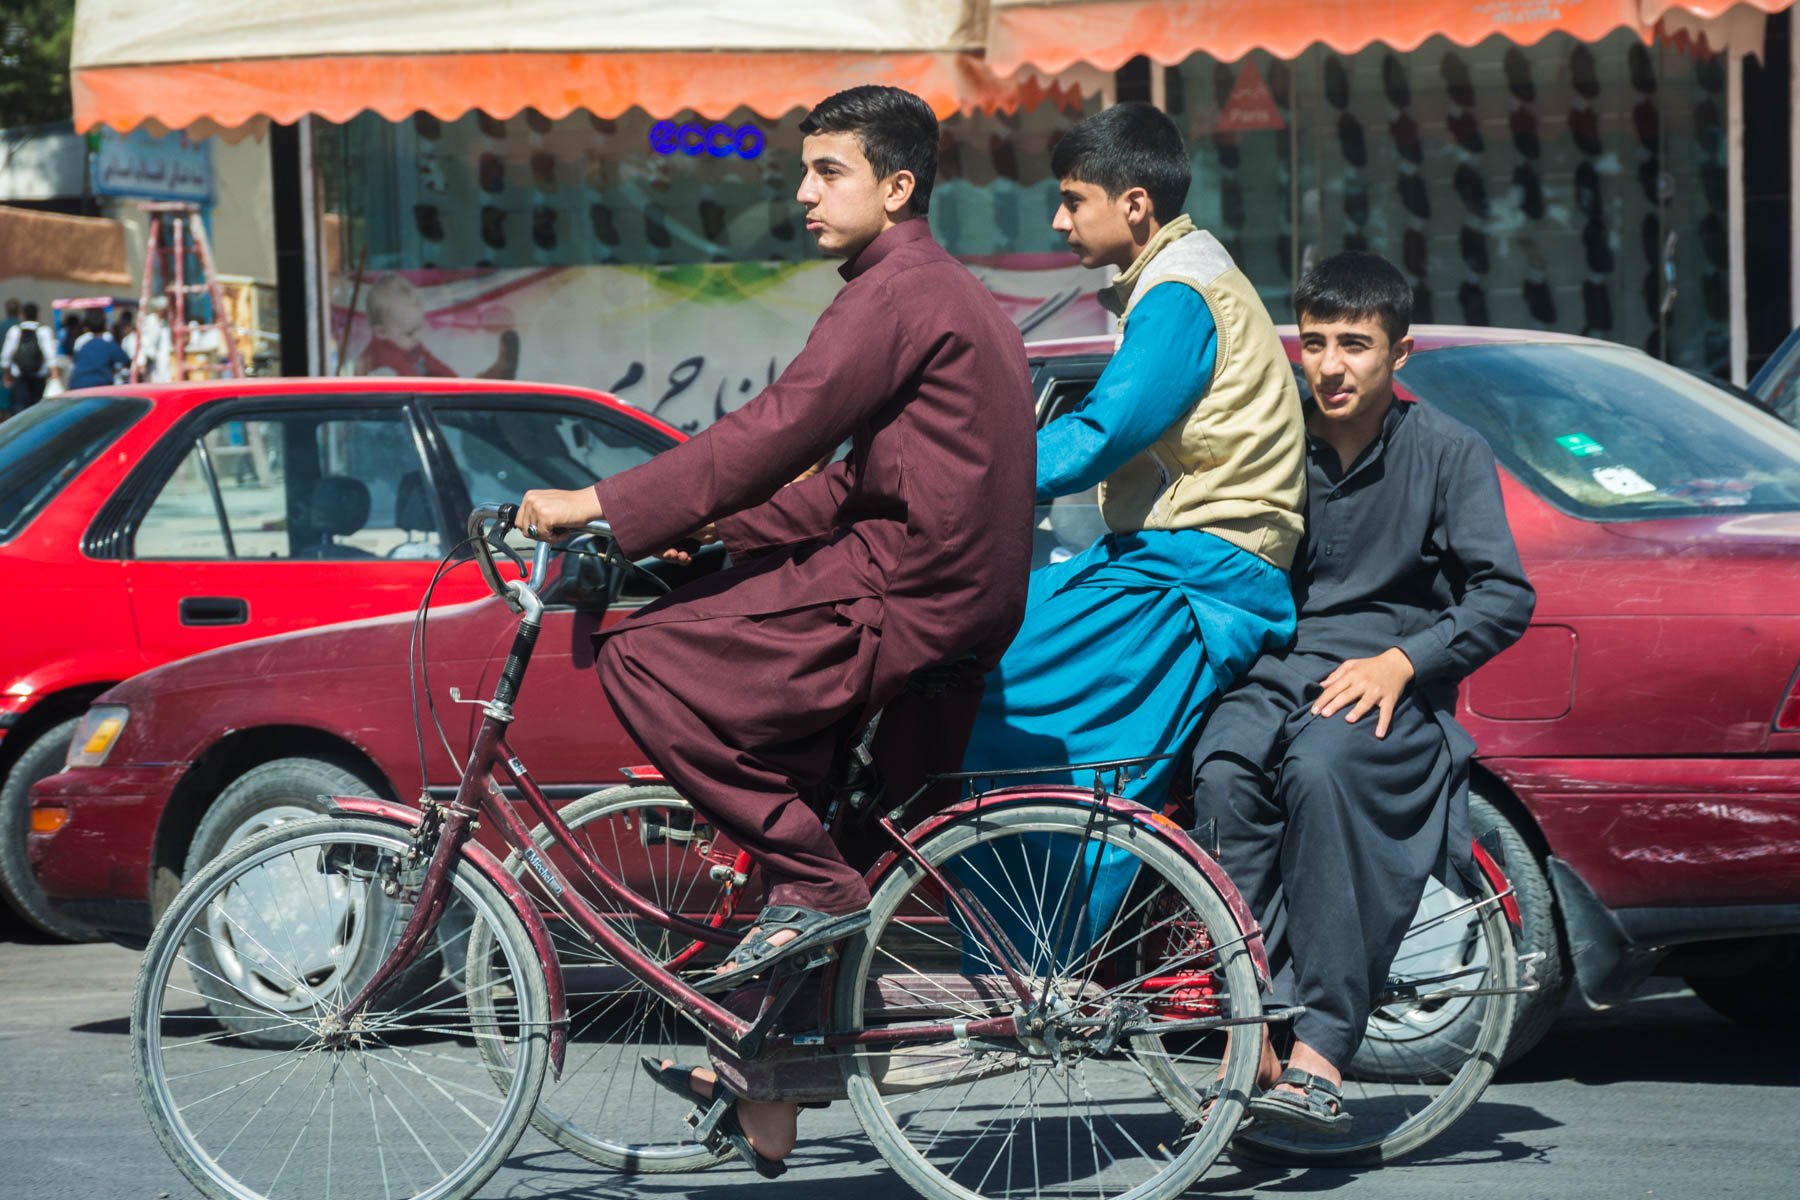 Boys biking in Herat, Afghanistan - Lost With Purpose